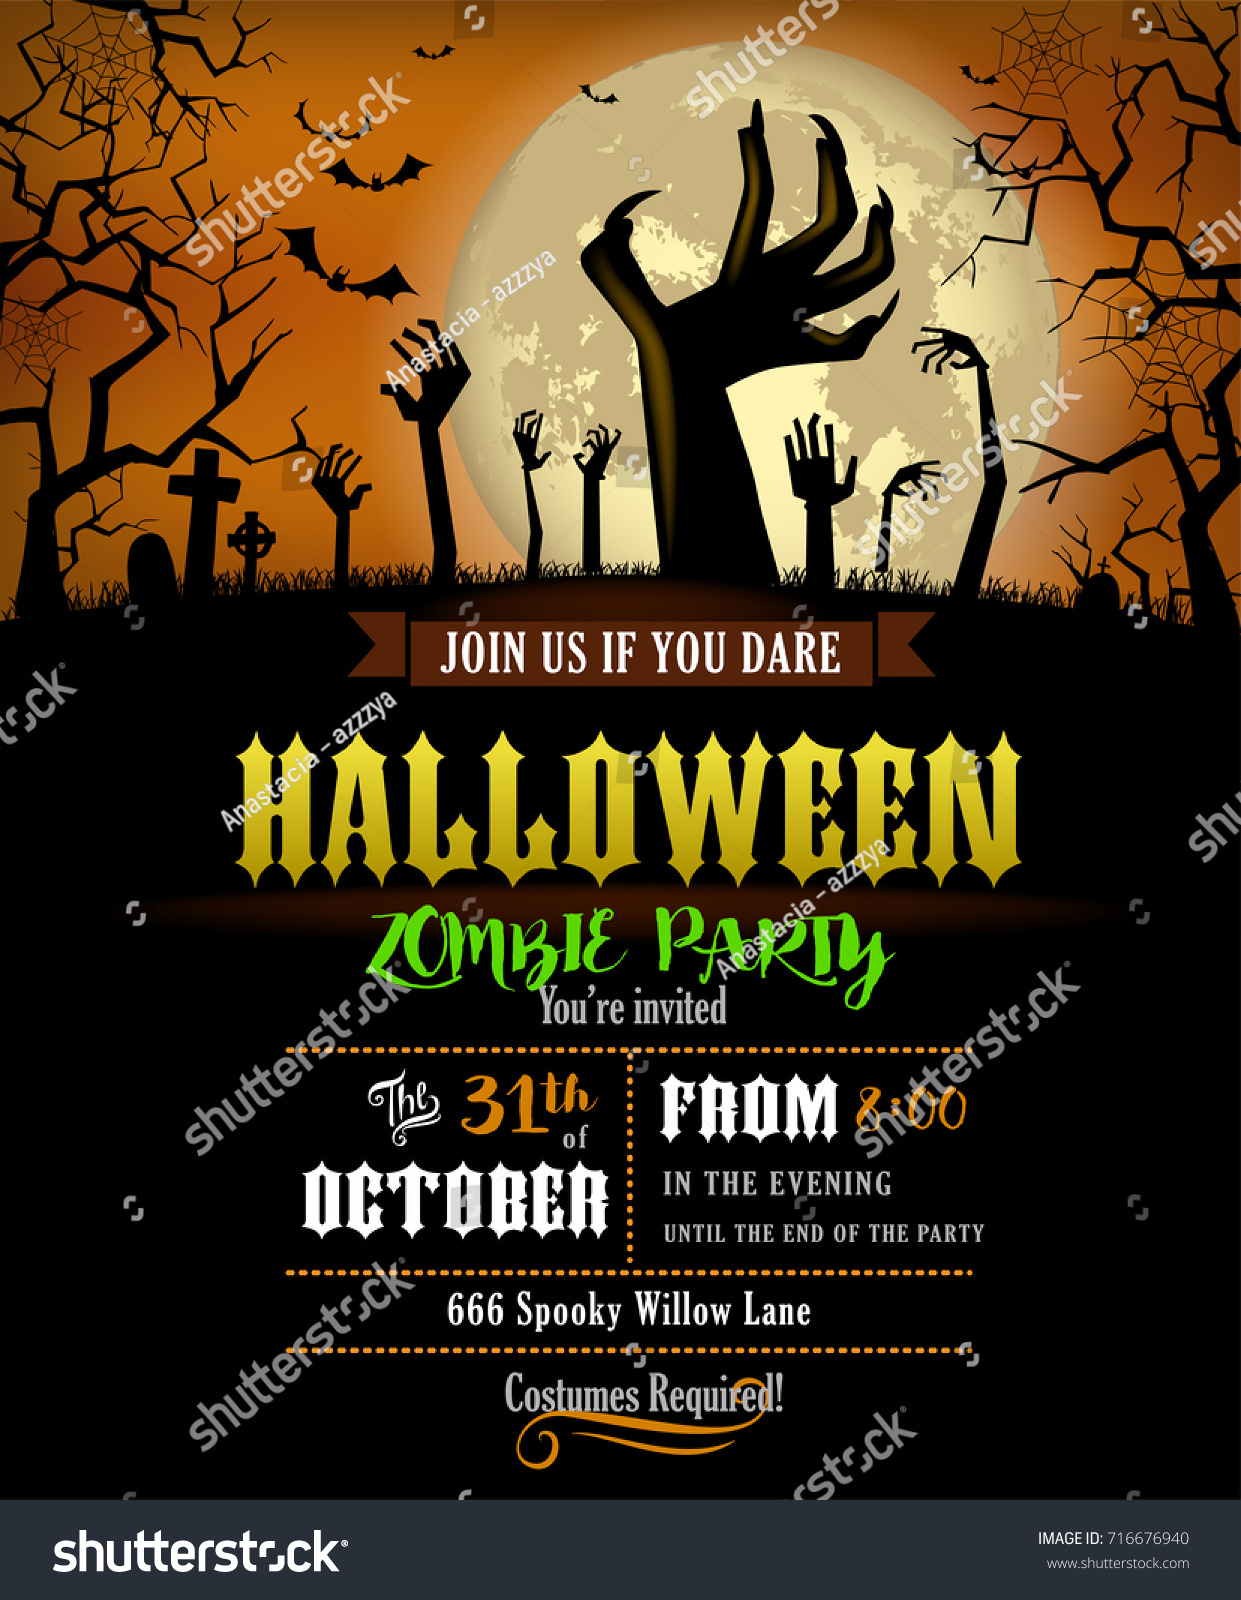 Halloween Party Invitation Poster Zombies Party Stock Vector ...